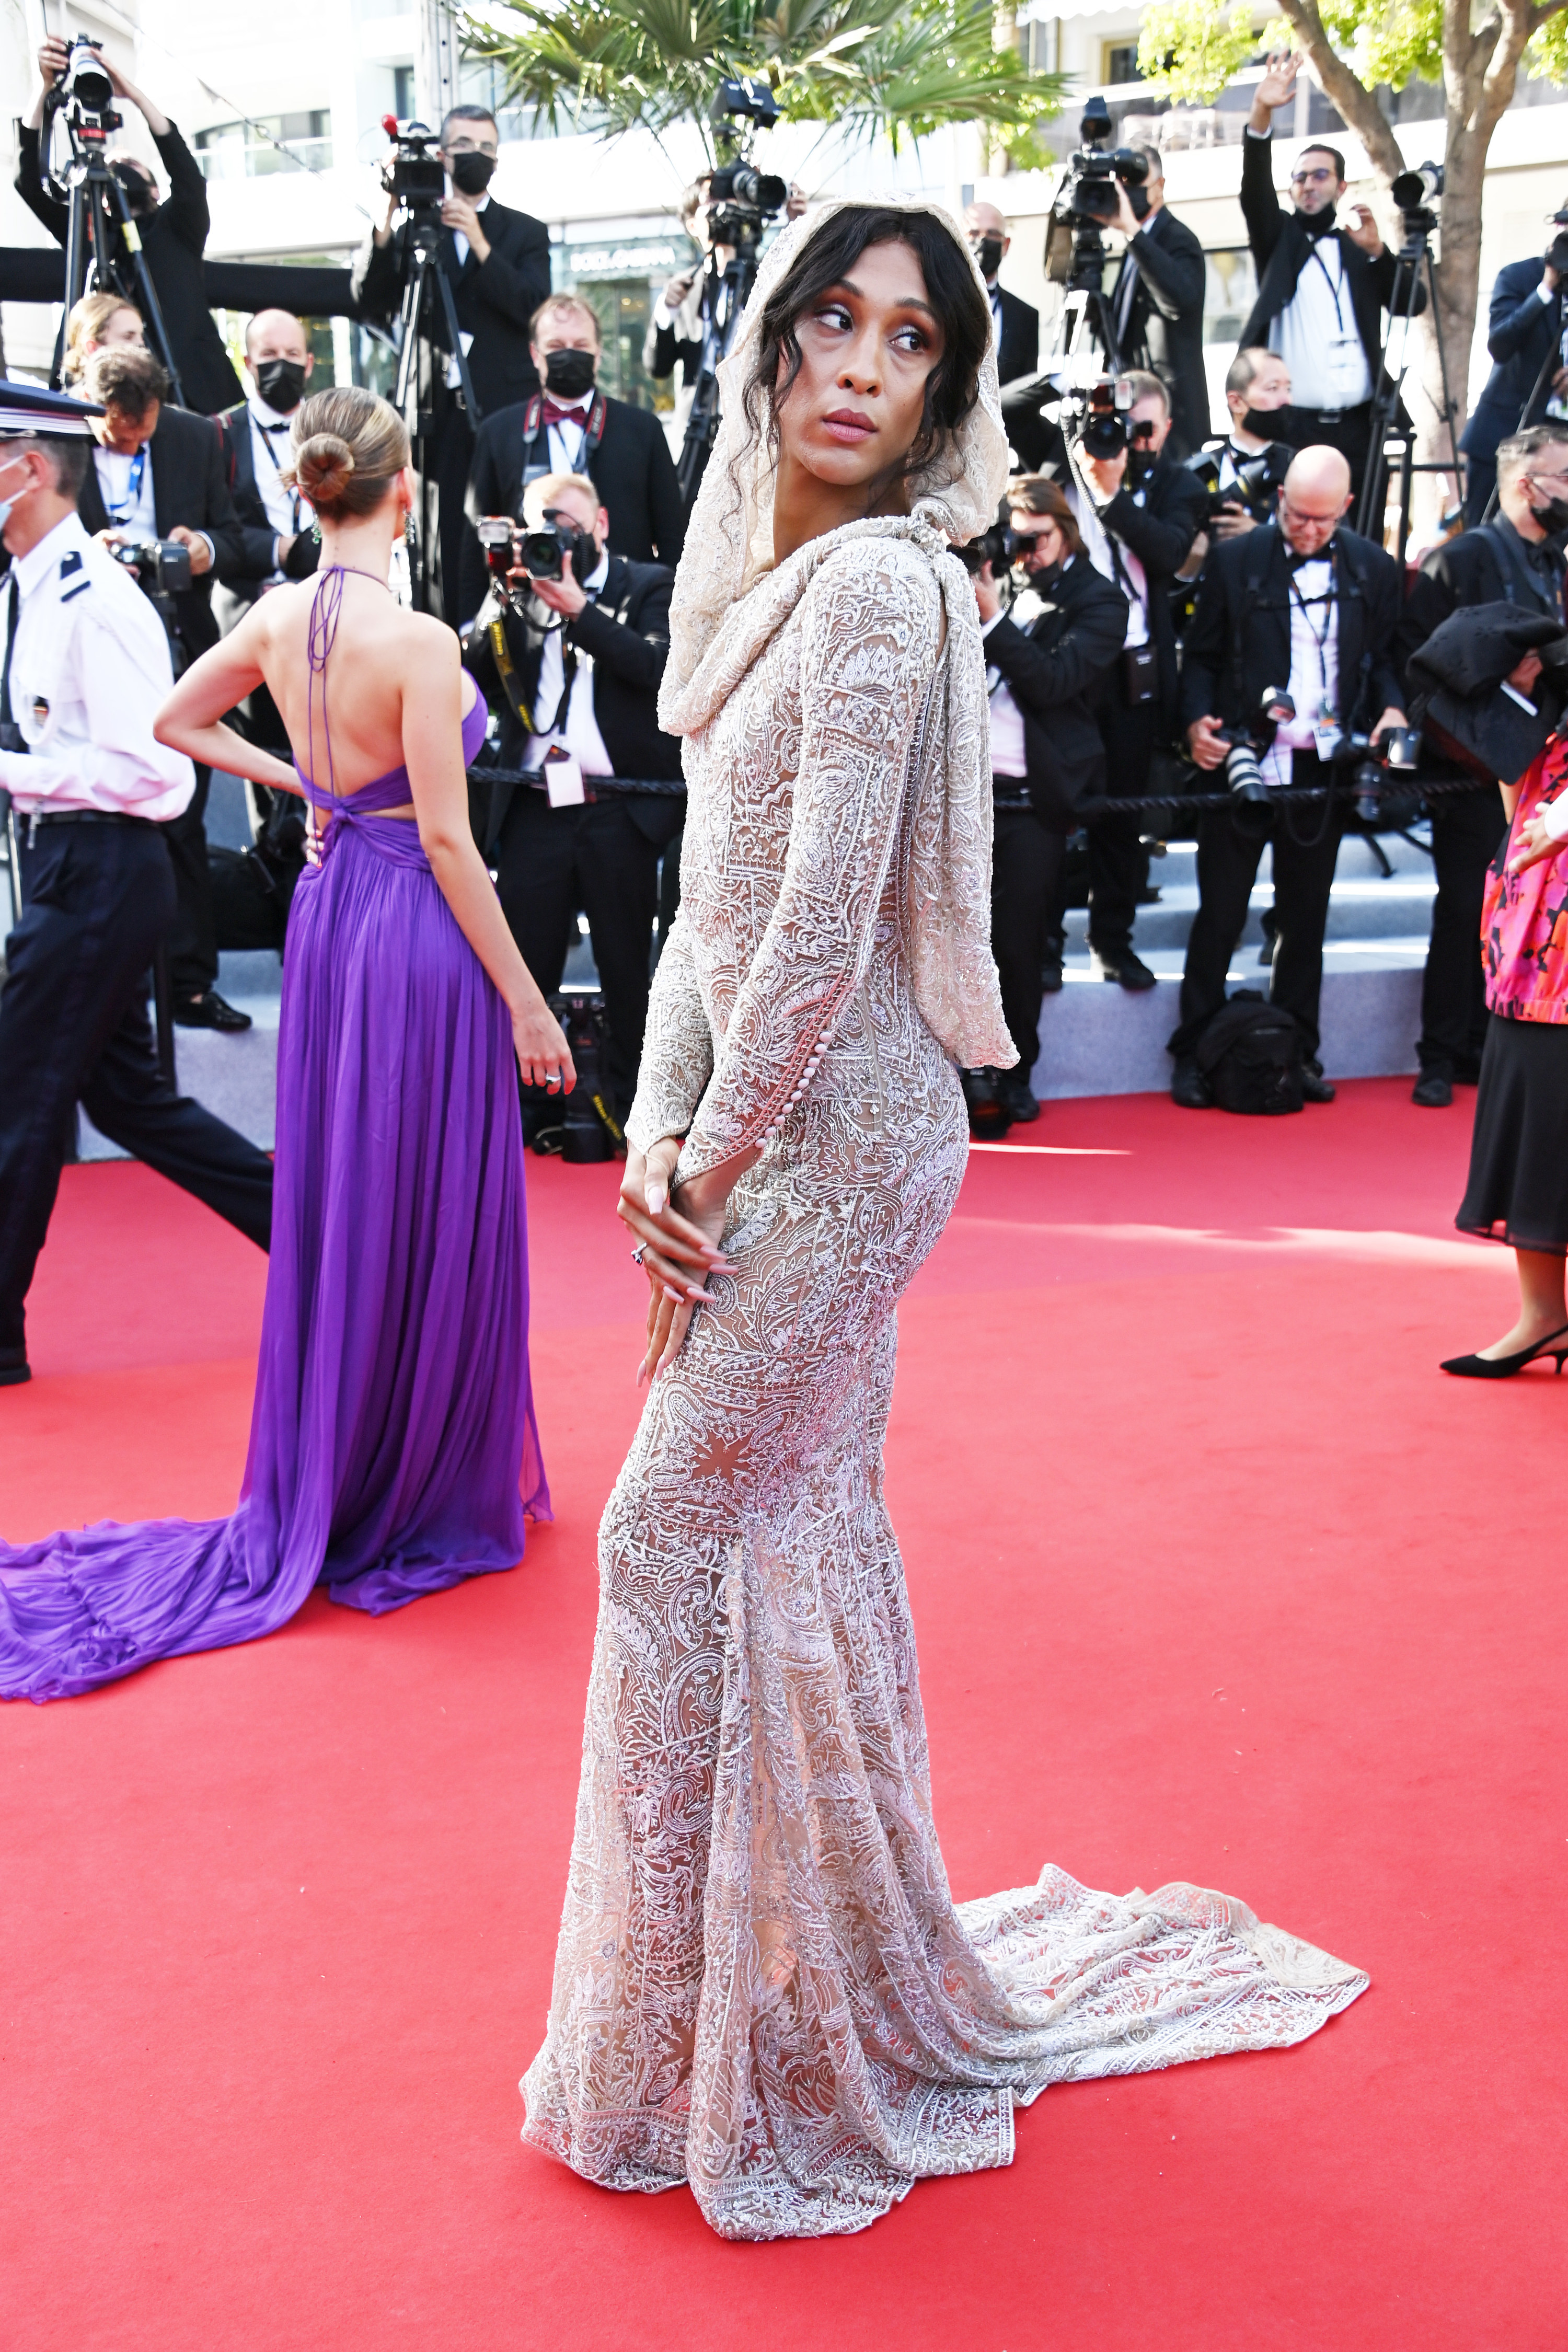 MJ Rodriguez at the Cannes Film Festival